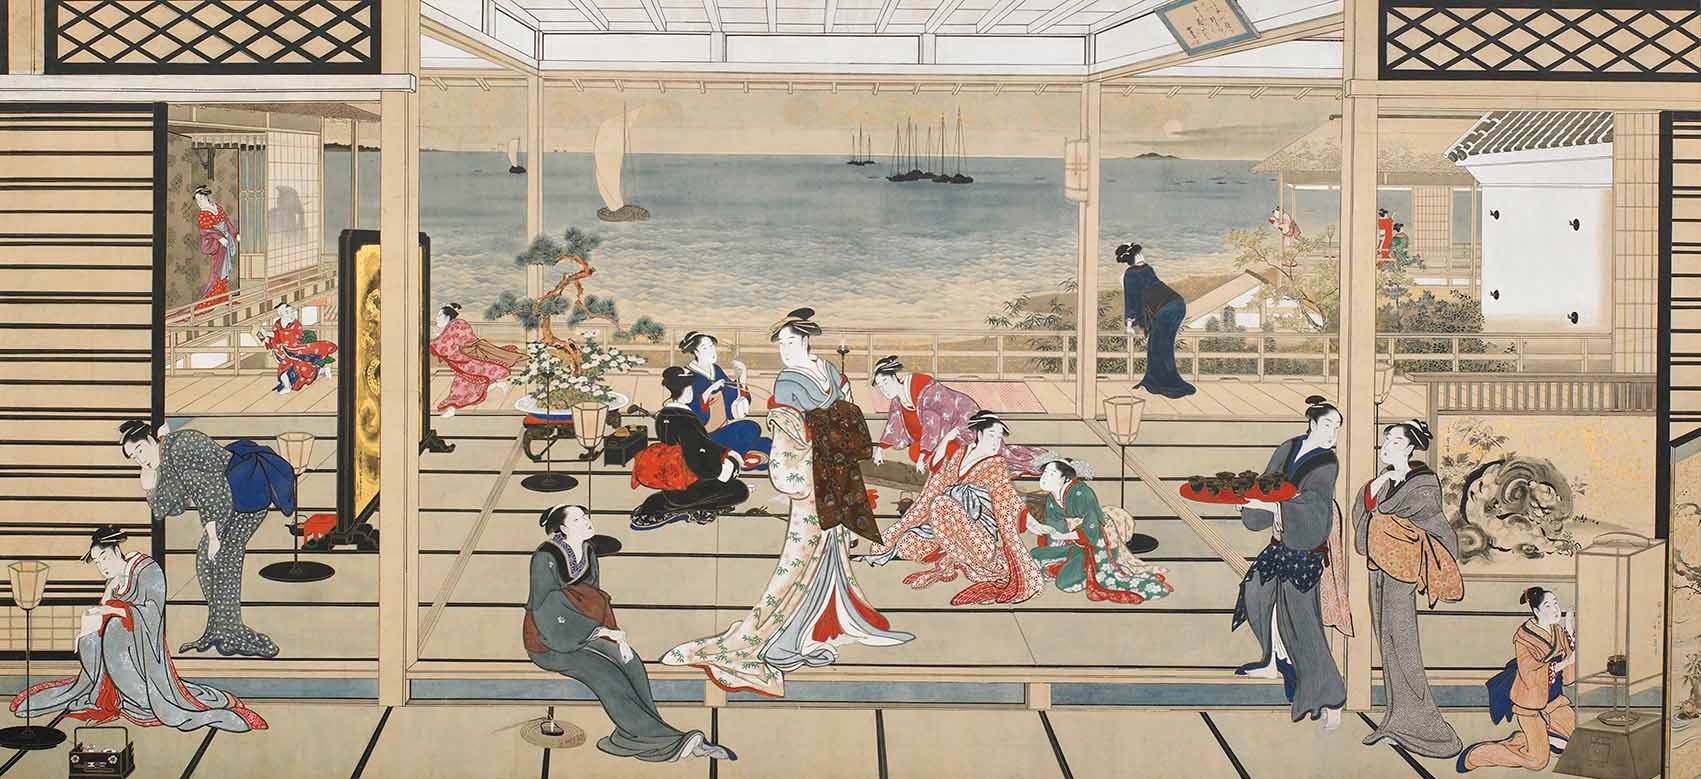 Moon at Shinagawa (also known as Moonlight Revelry at Dozo Sagami) by Kitagawa Utamaro (1753-1806), Japan, Edo period, circa 1788, painting mounted on panel, colour on paper, Freer Gallery of Art. Gift of Charles Lang Freer